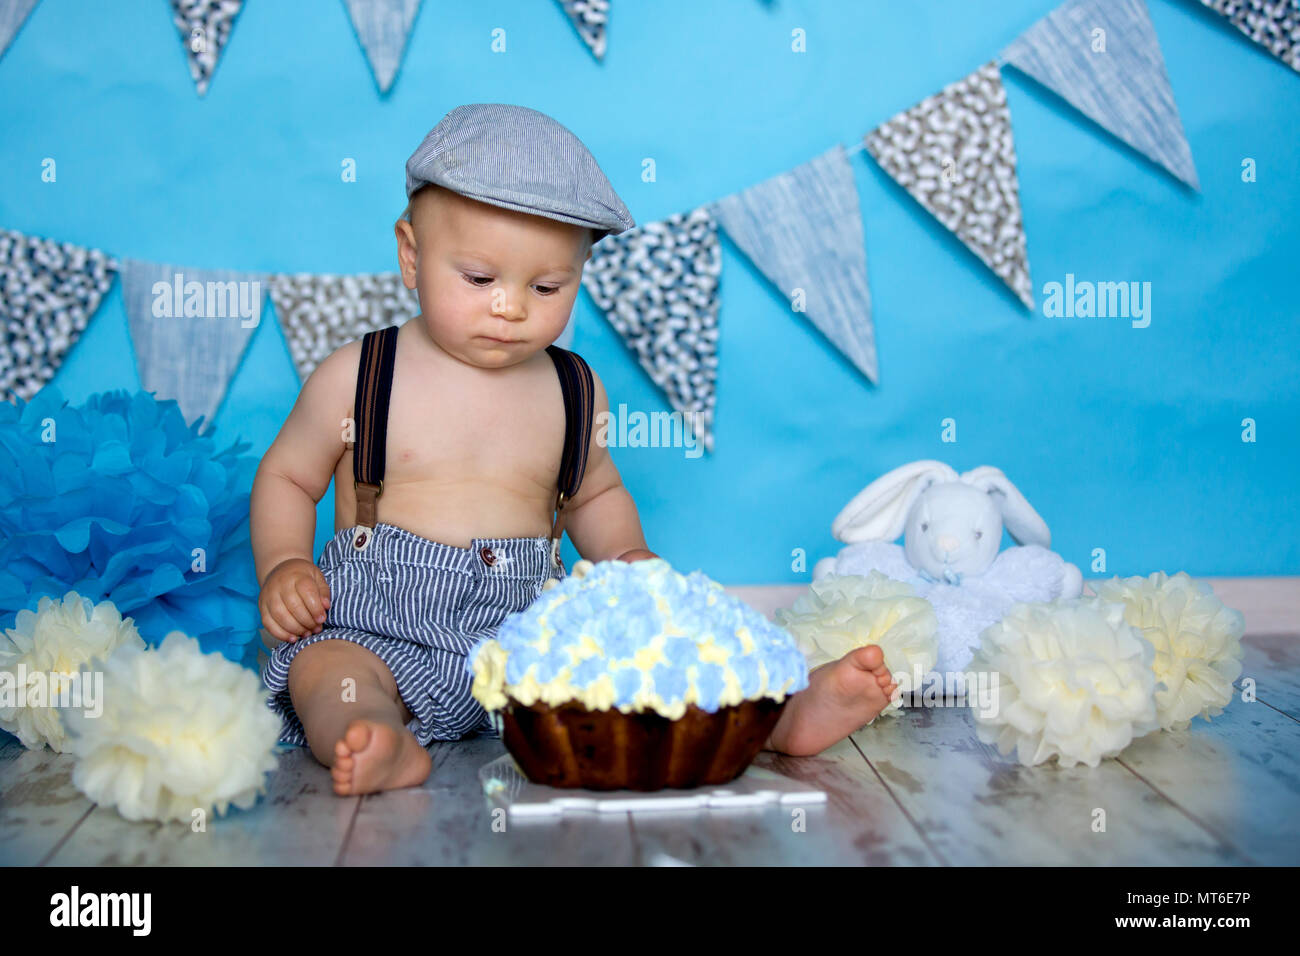 Magnificent Little Baby Boy Celebrating His First Birthday With Smash Cake Funny Birthday Cards Online Elaedamsfinfo